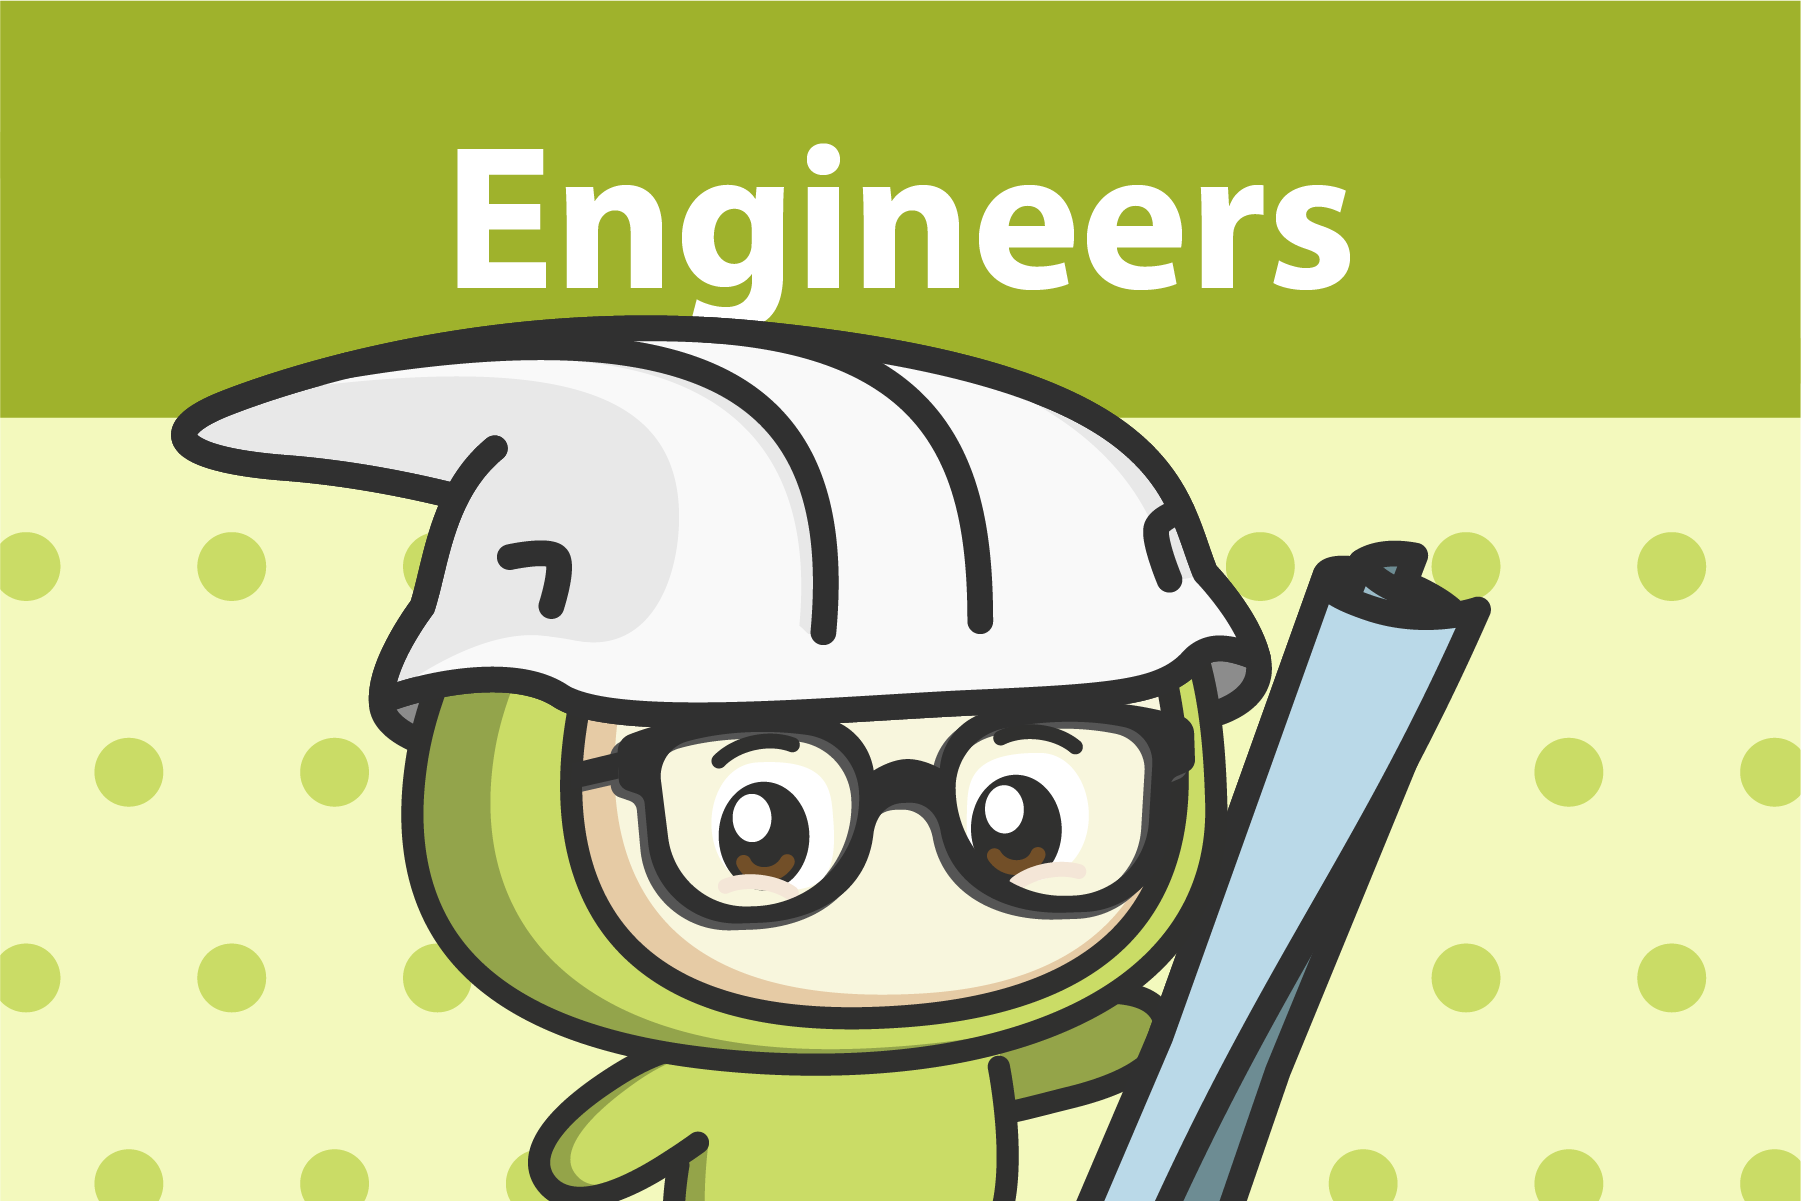 Engineers & Designers